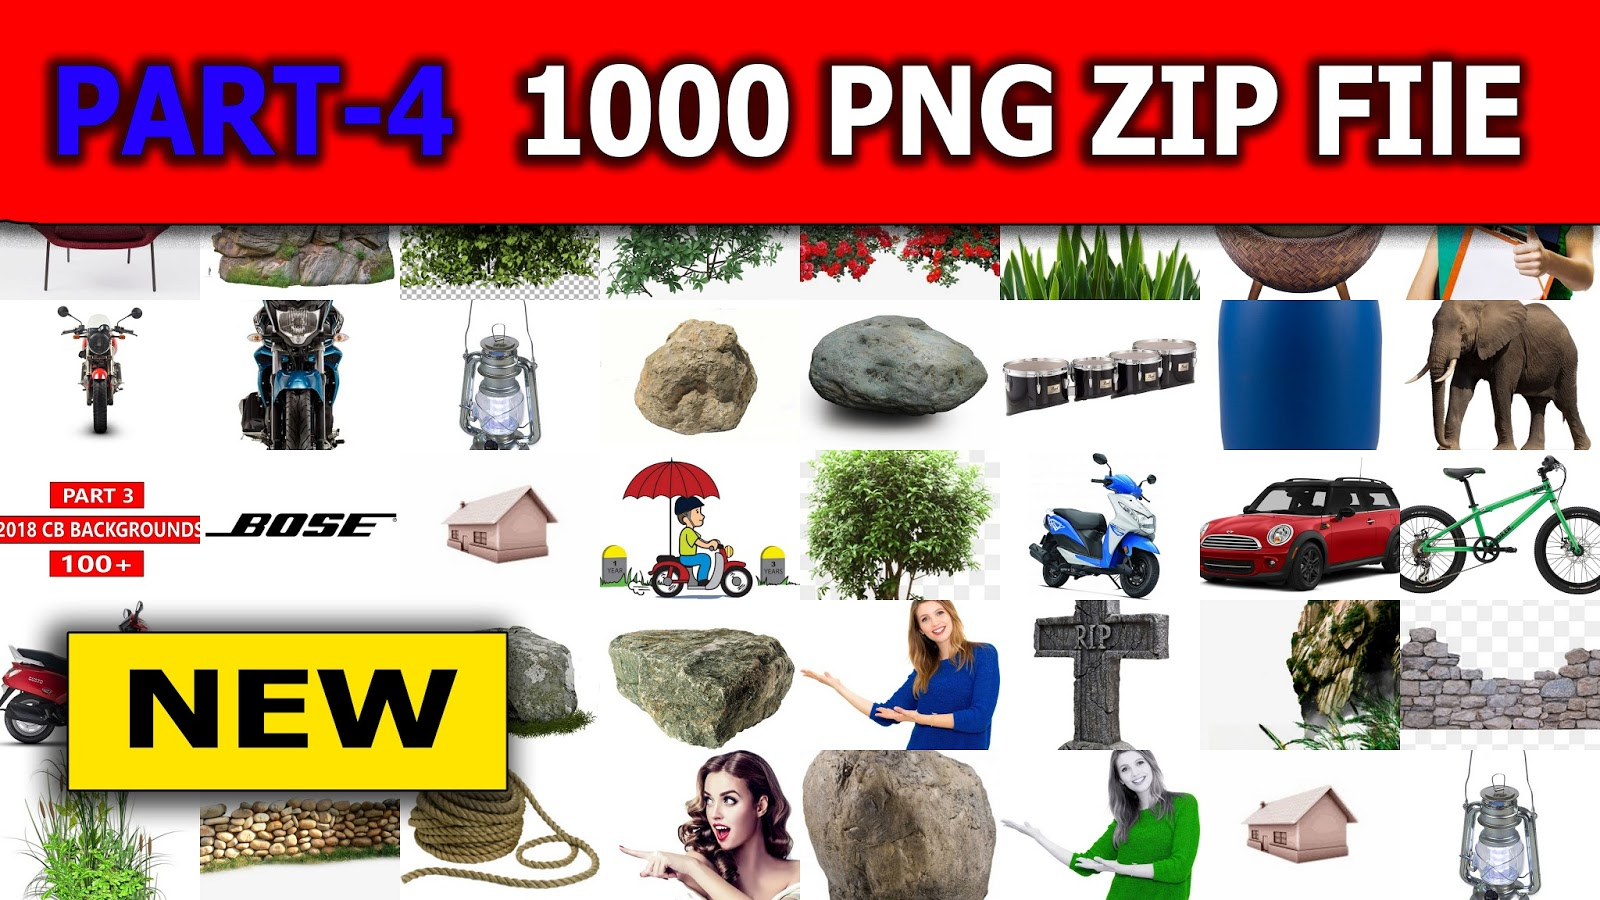 Part 4 ) New 1000 PNg Zip File Download, All New Editing Png